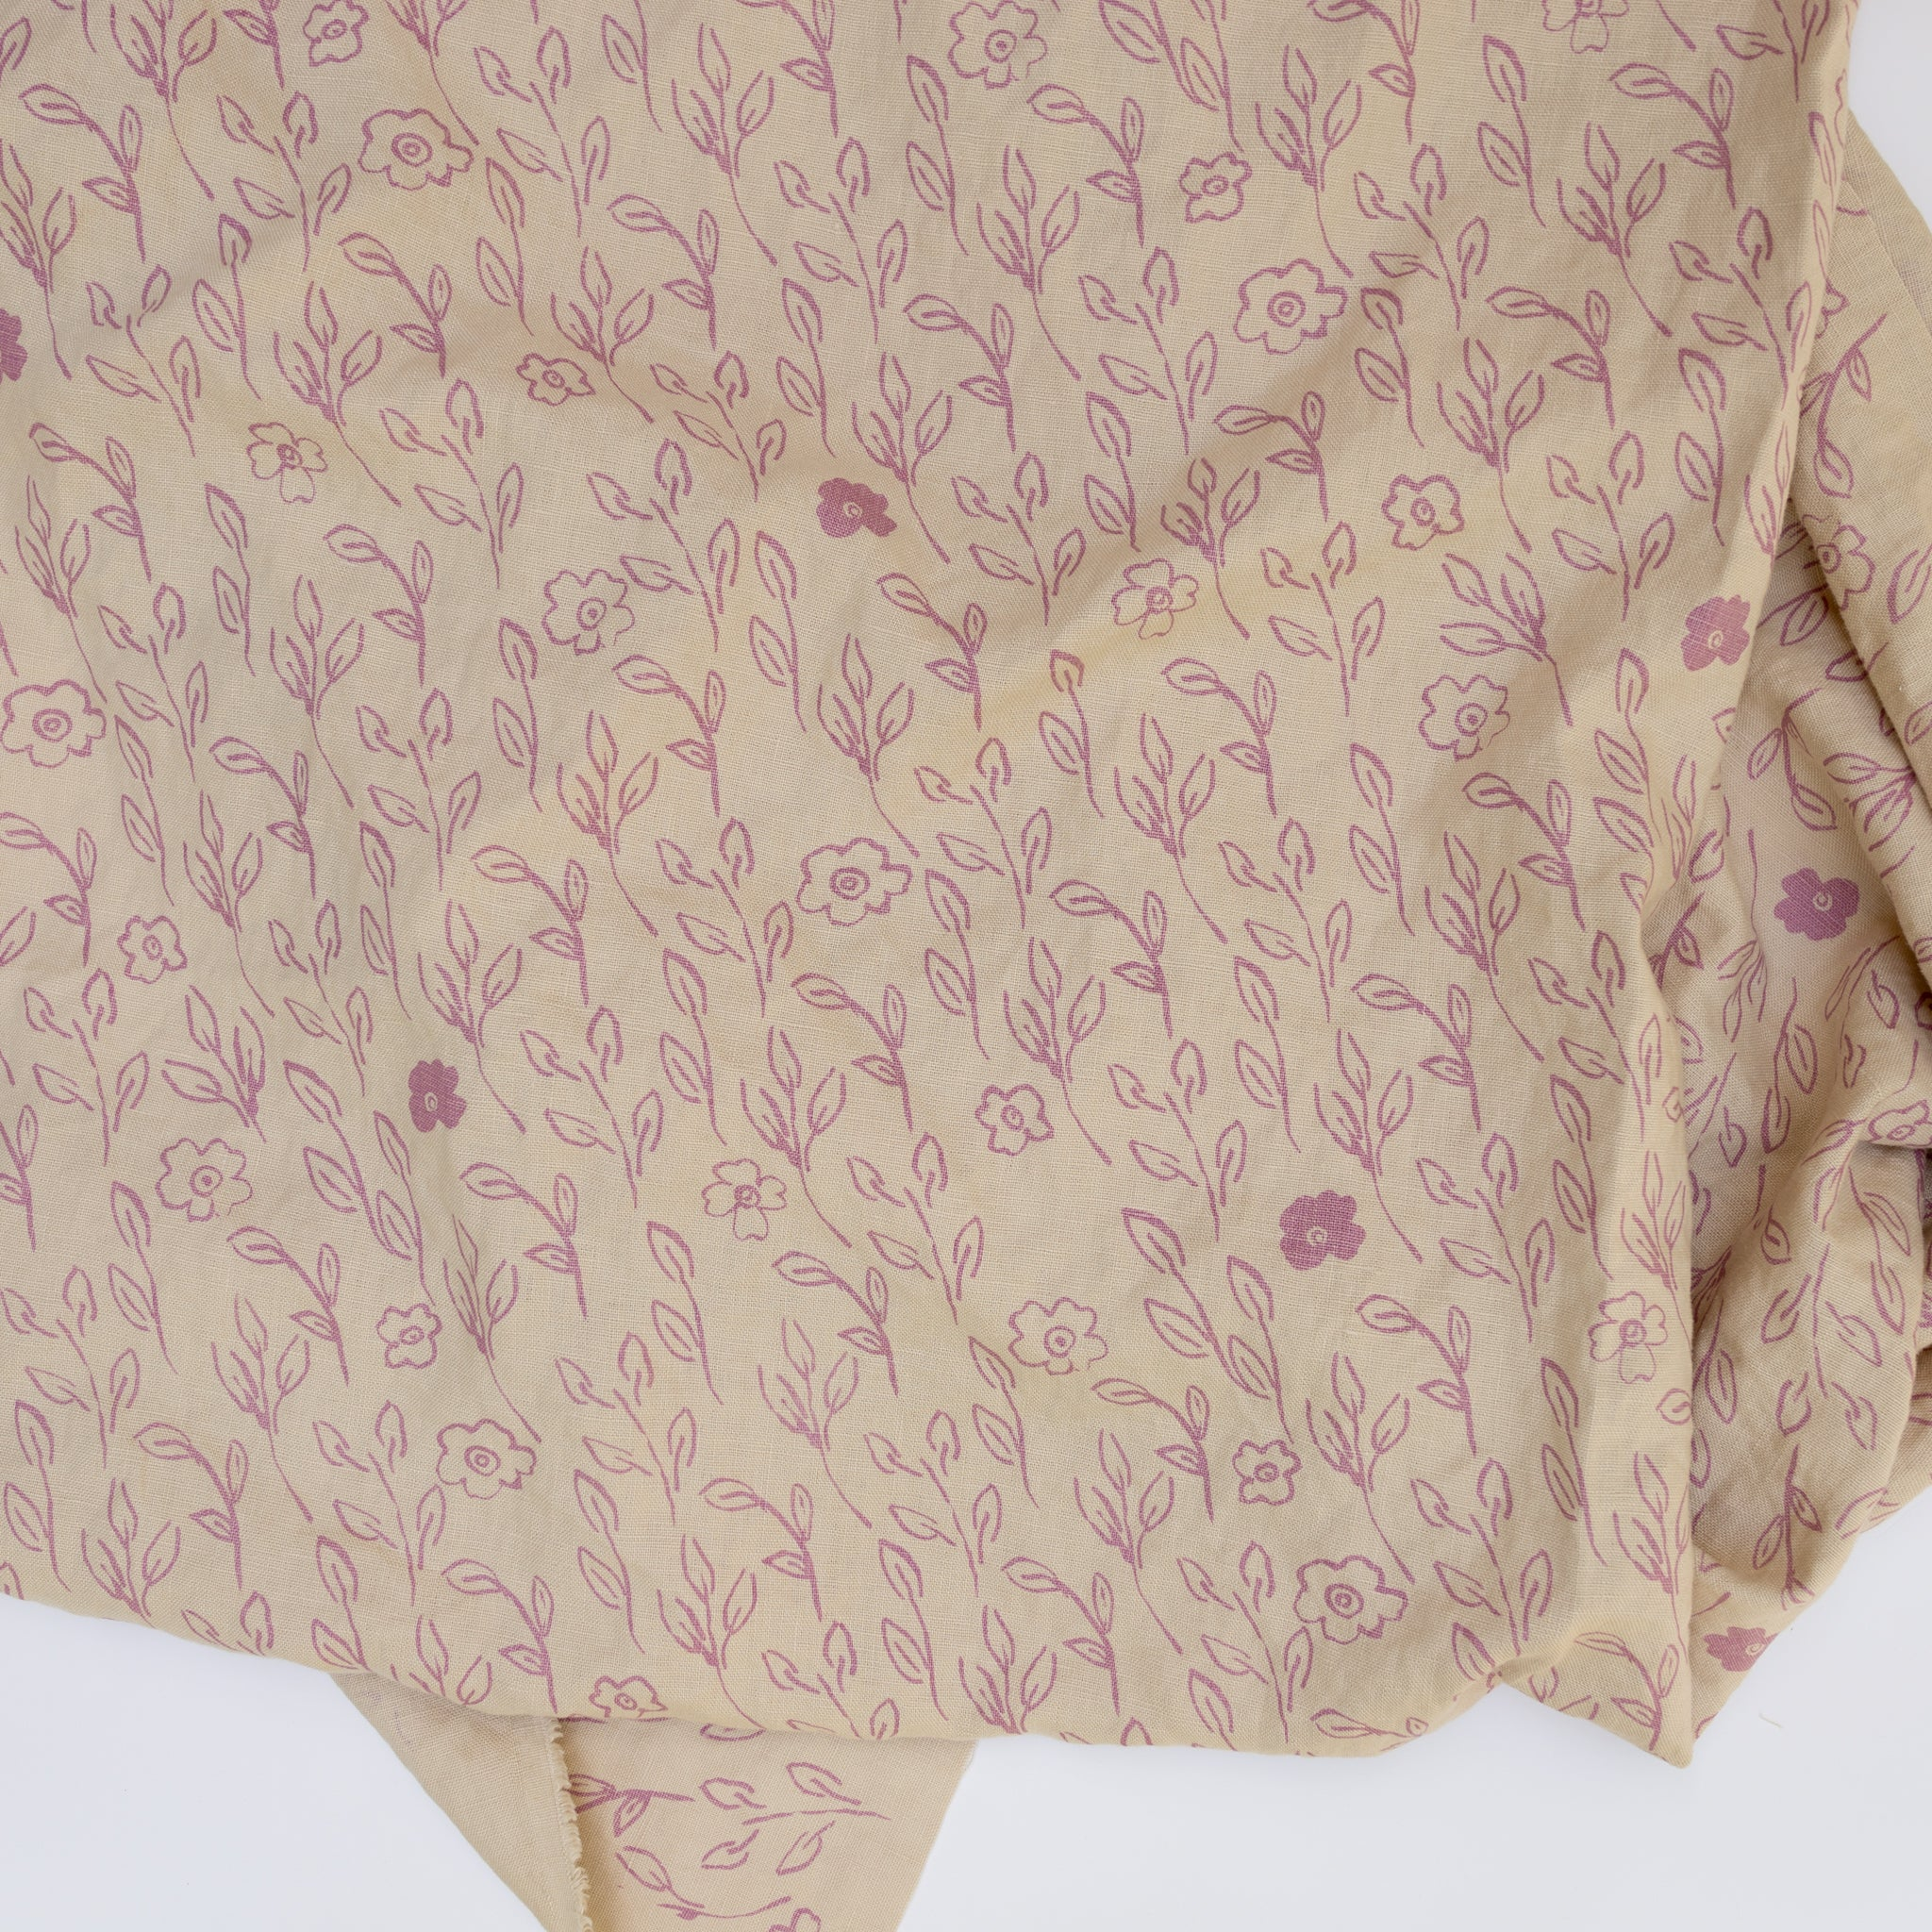 Bisque linen screenprinted with little pink flowers and leaves